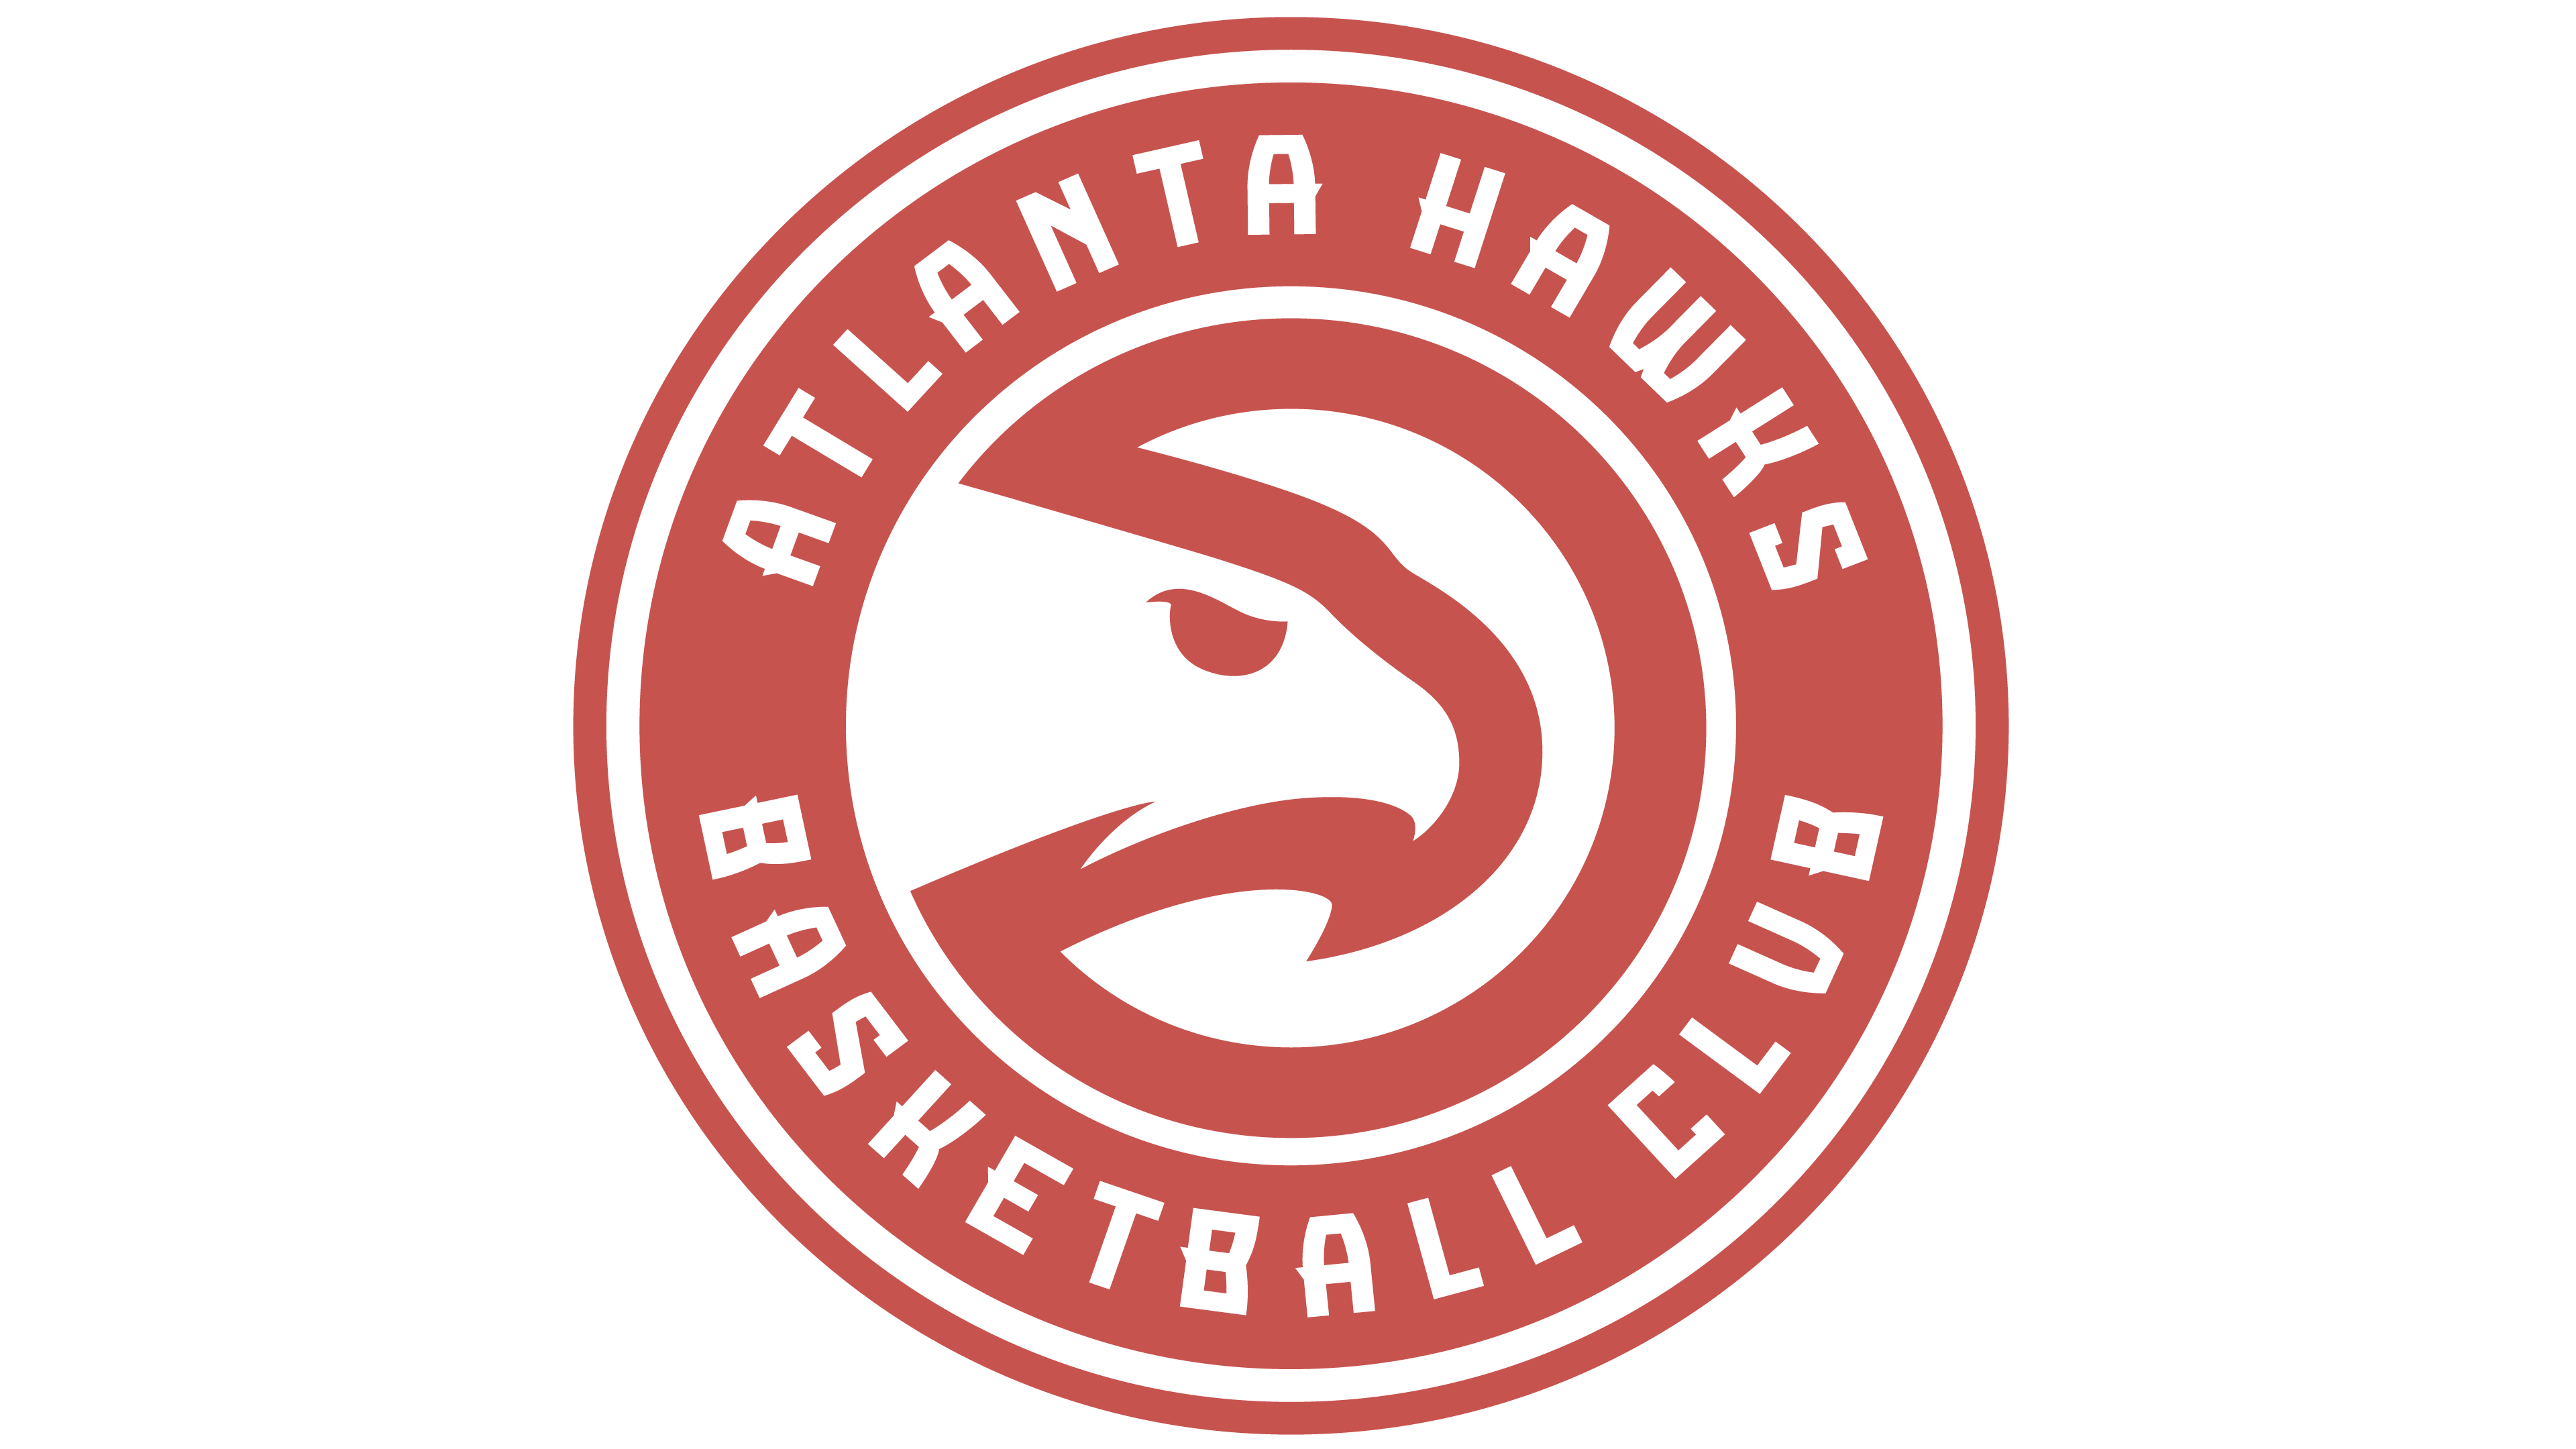 Upcoming Atlanta Hawks games in February thumbnail